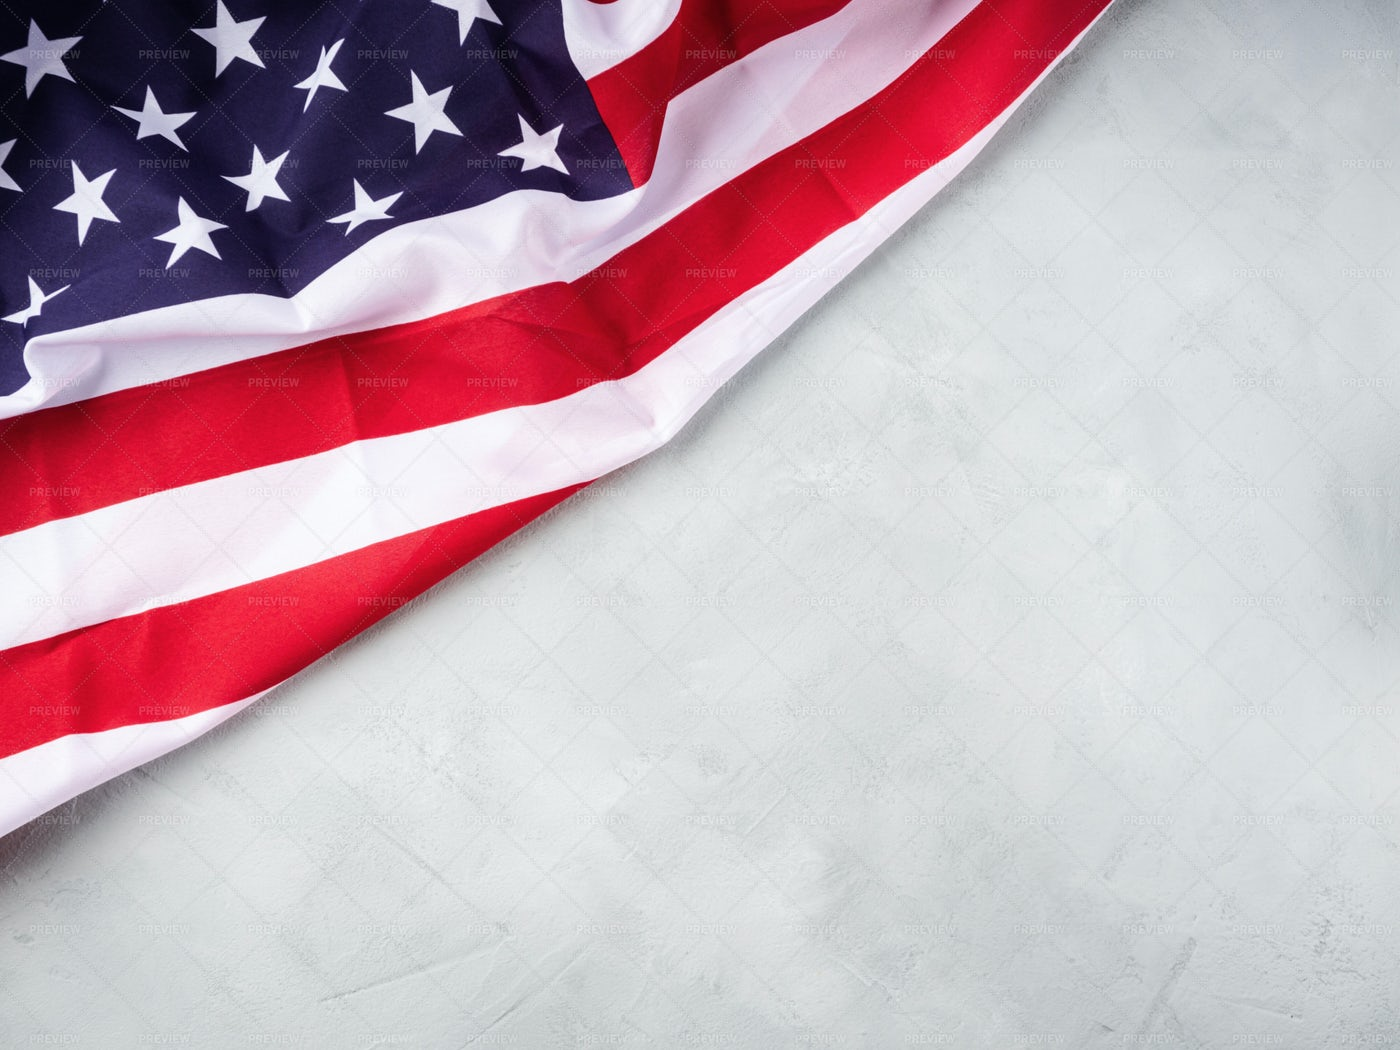 Stars And Stripes Flag Background: Stock Photos